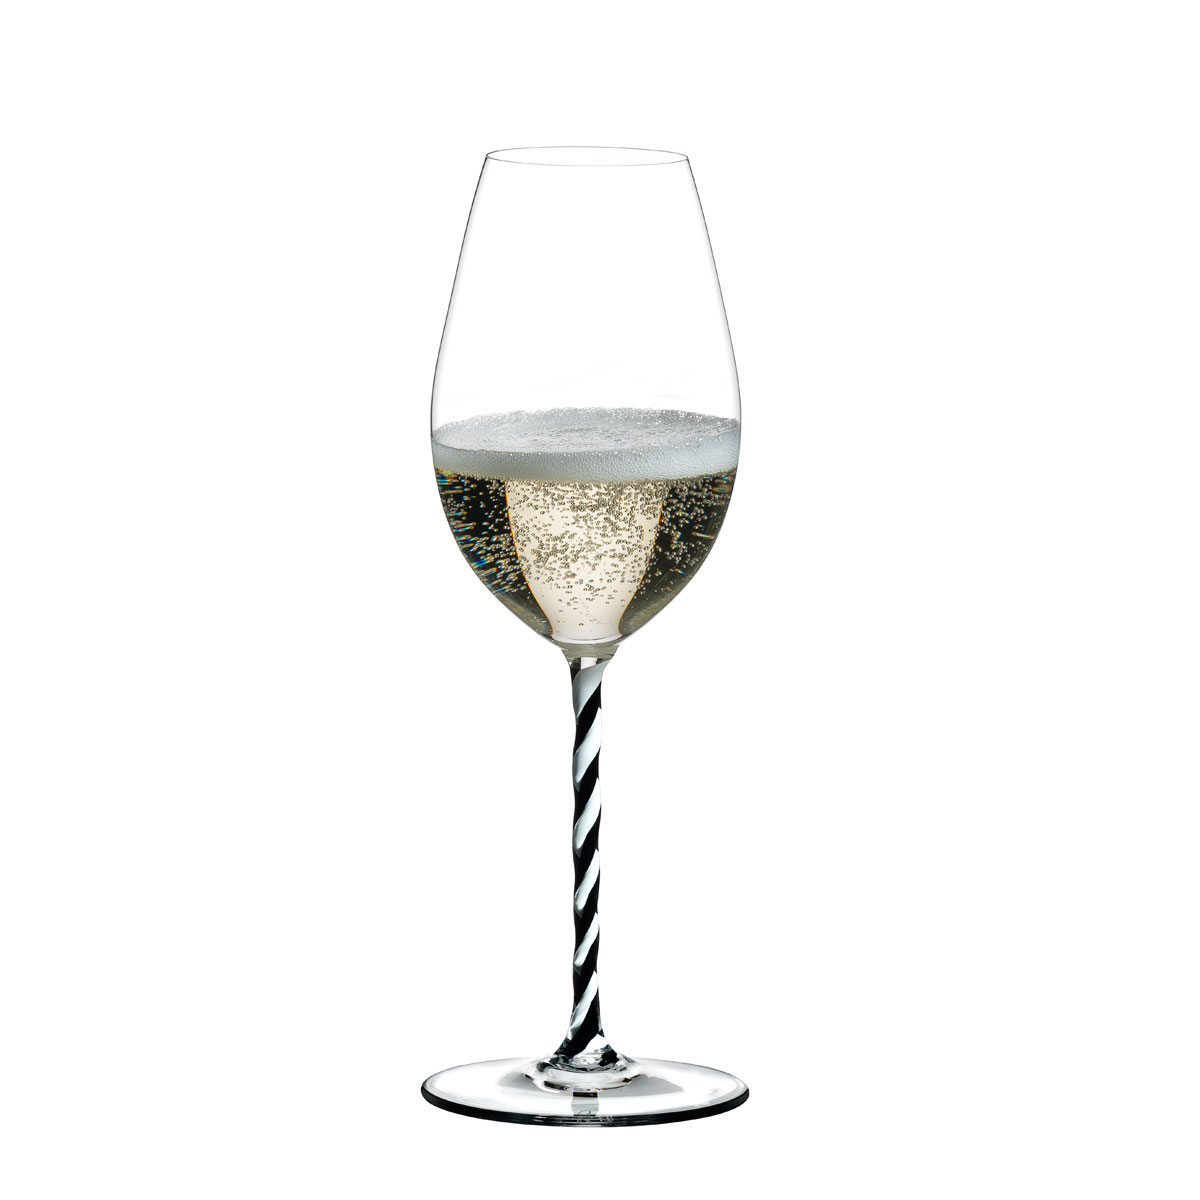 Riedel Fatto A Mano, Champagne Wine Glass, Black and White Twist, Single